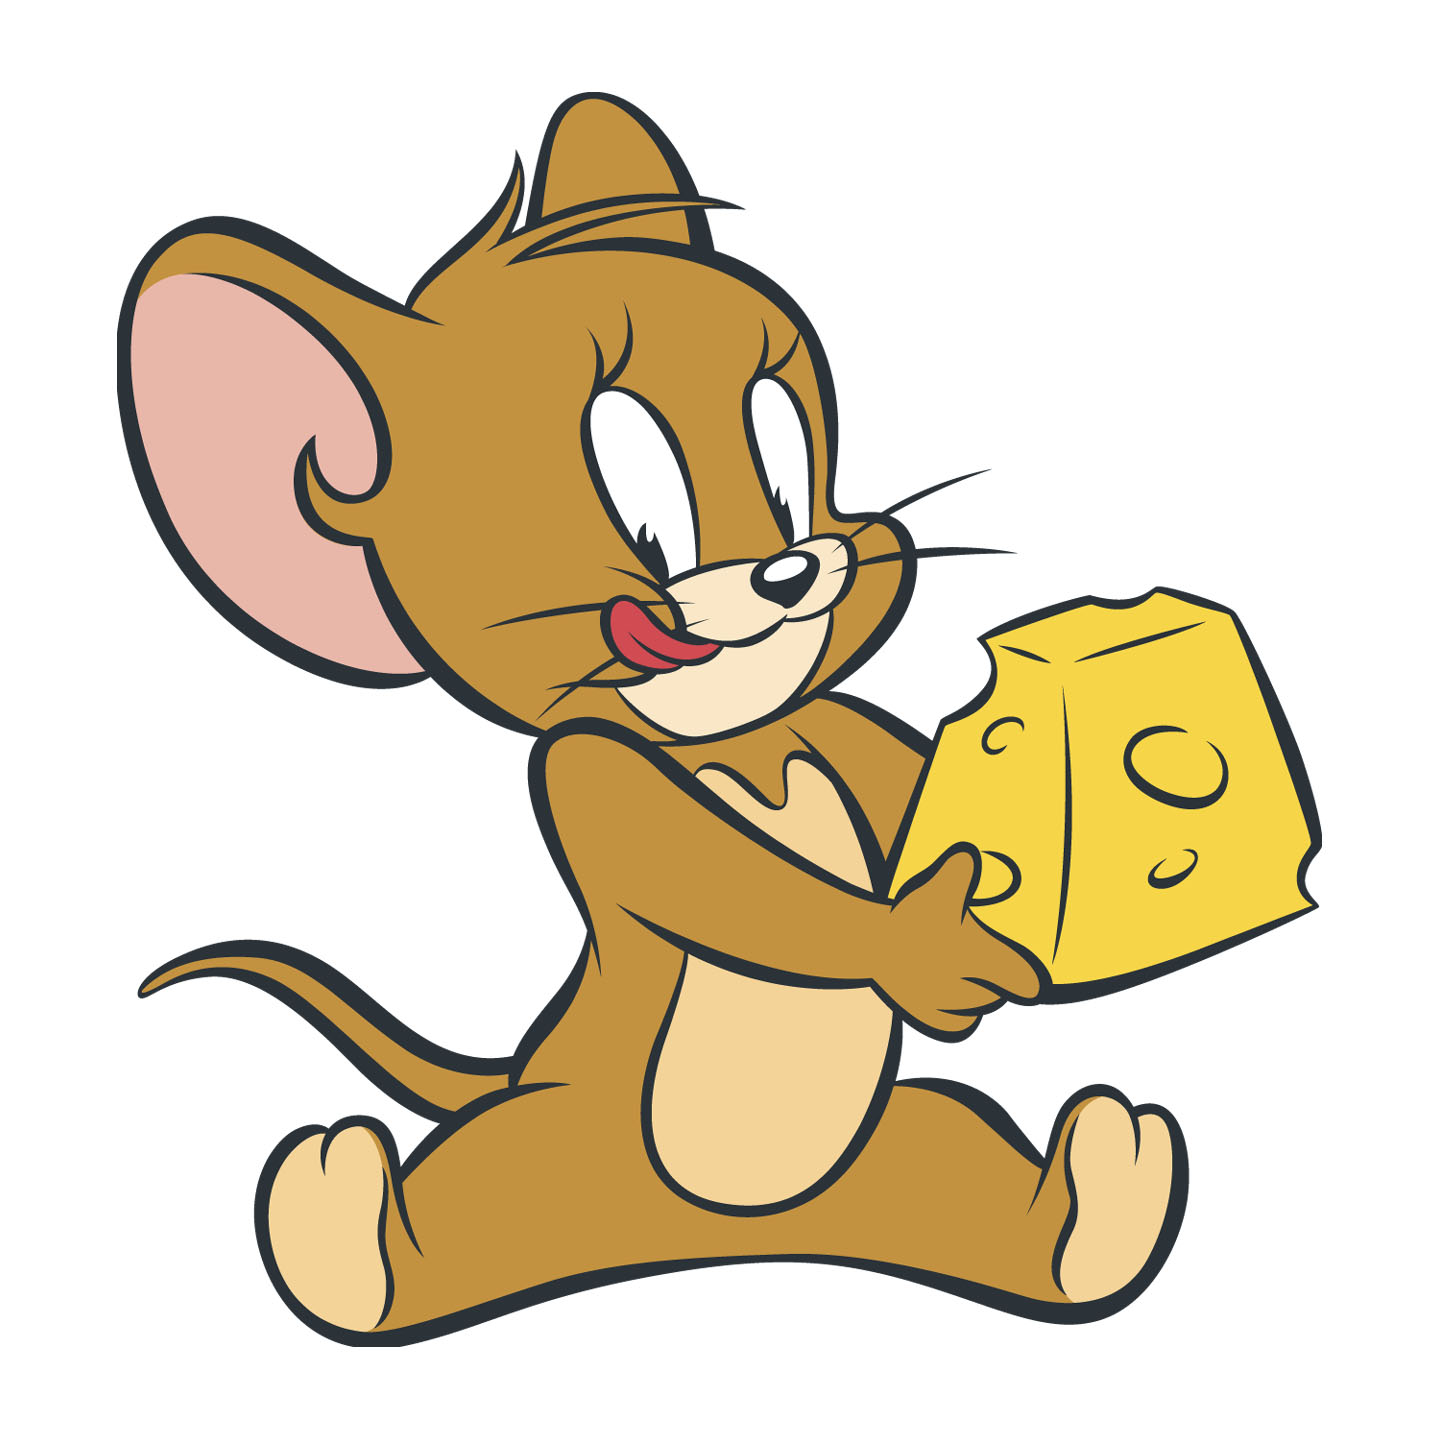 1440x1440 Drawn Cheese Tom And Jerry